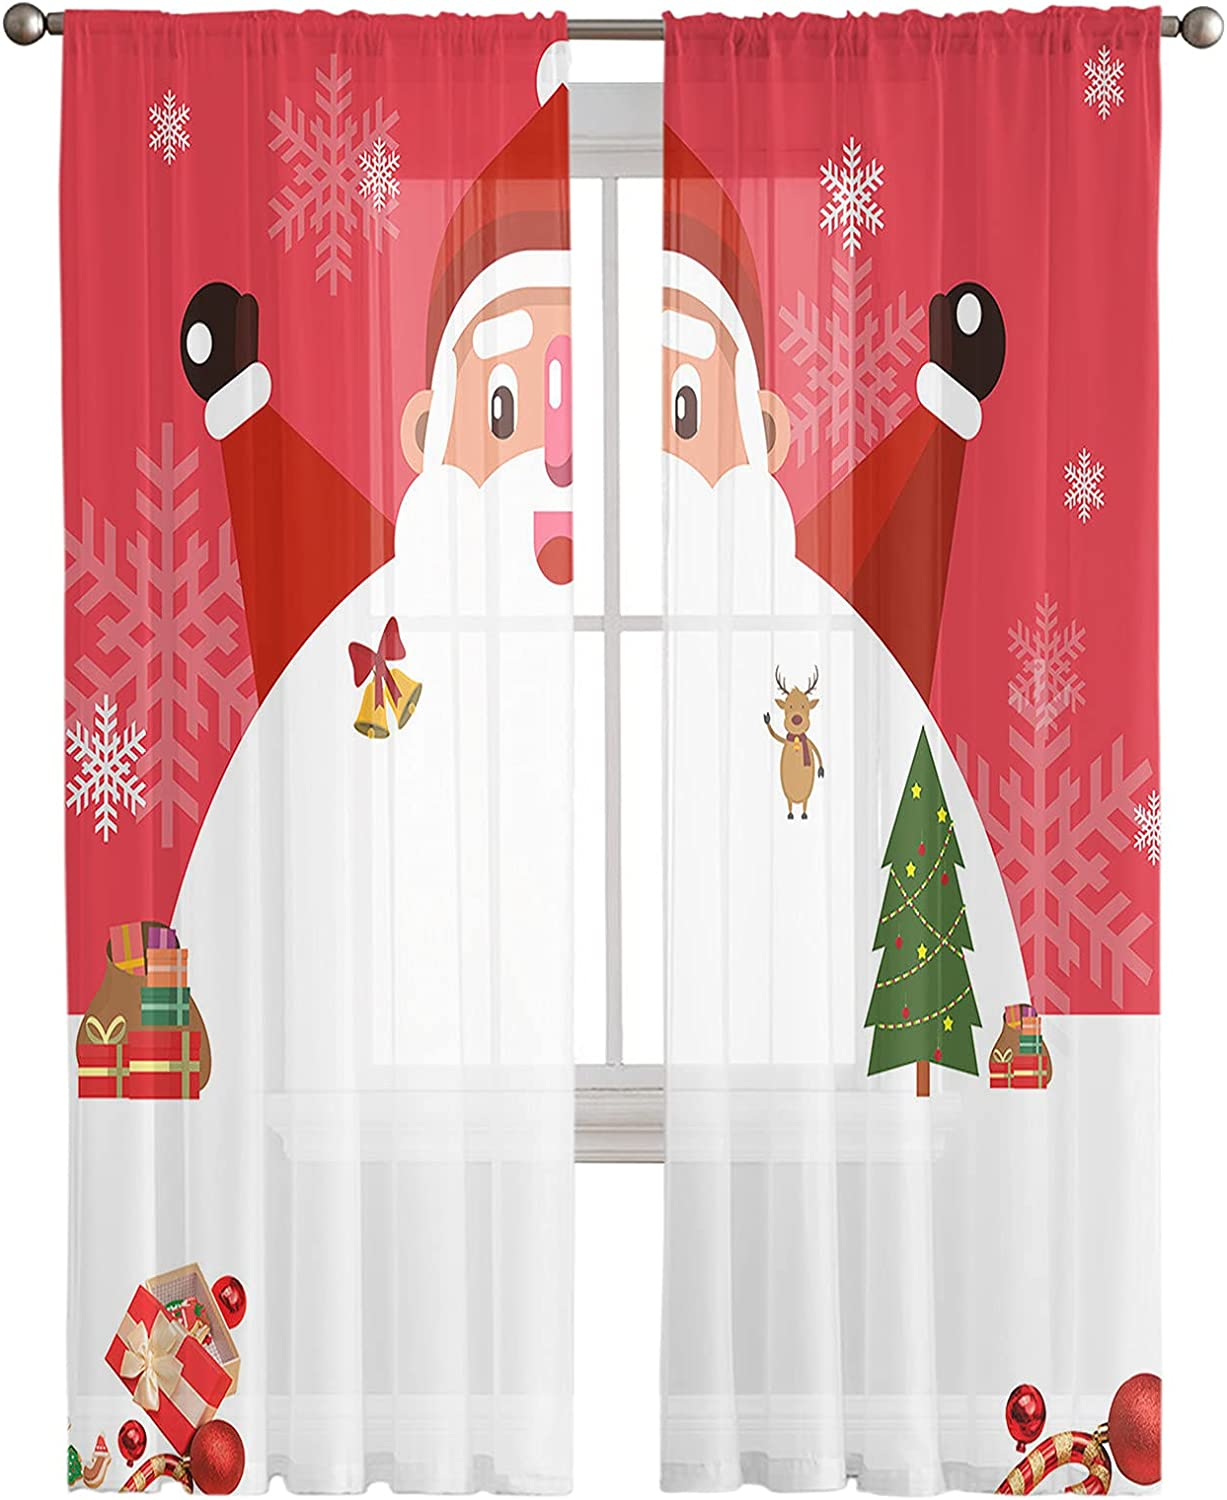 Sheer Curtains Voile Drapes latest for Throug Living Translated Room Bedroom See